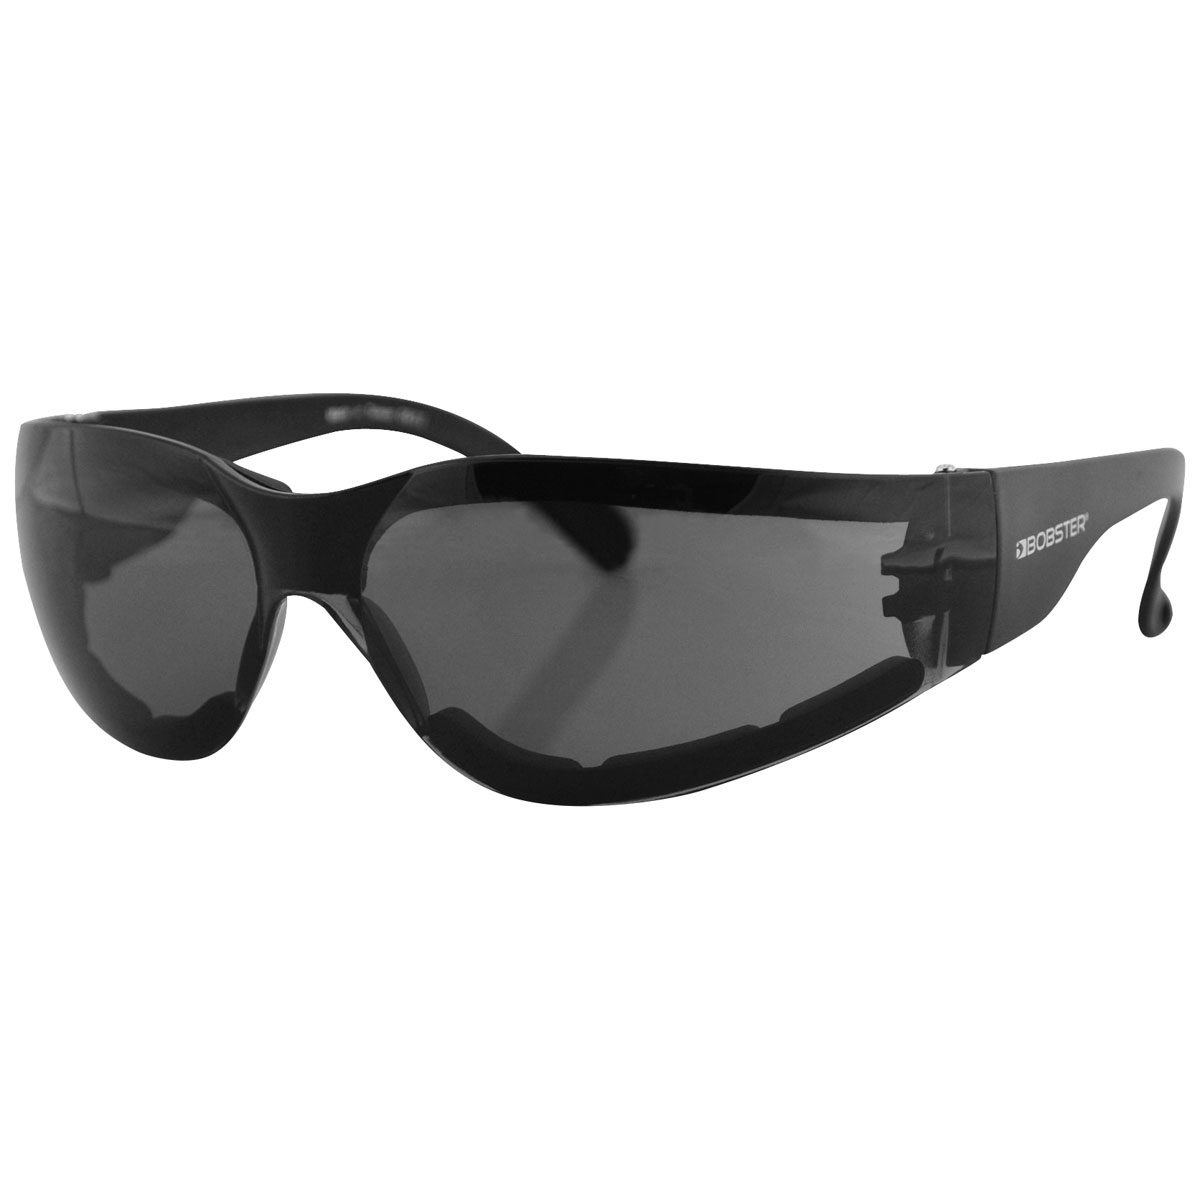 Bobster Shield III Sunglasses with Smoke Lens